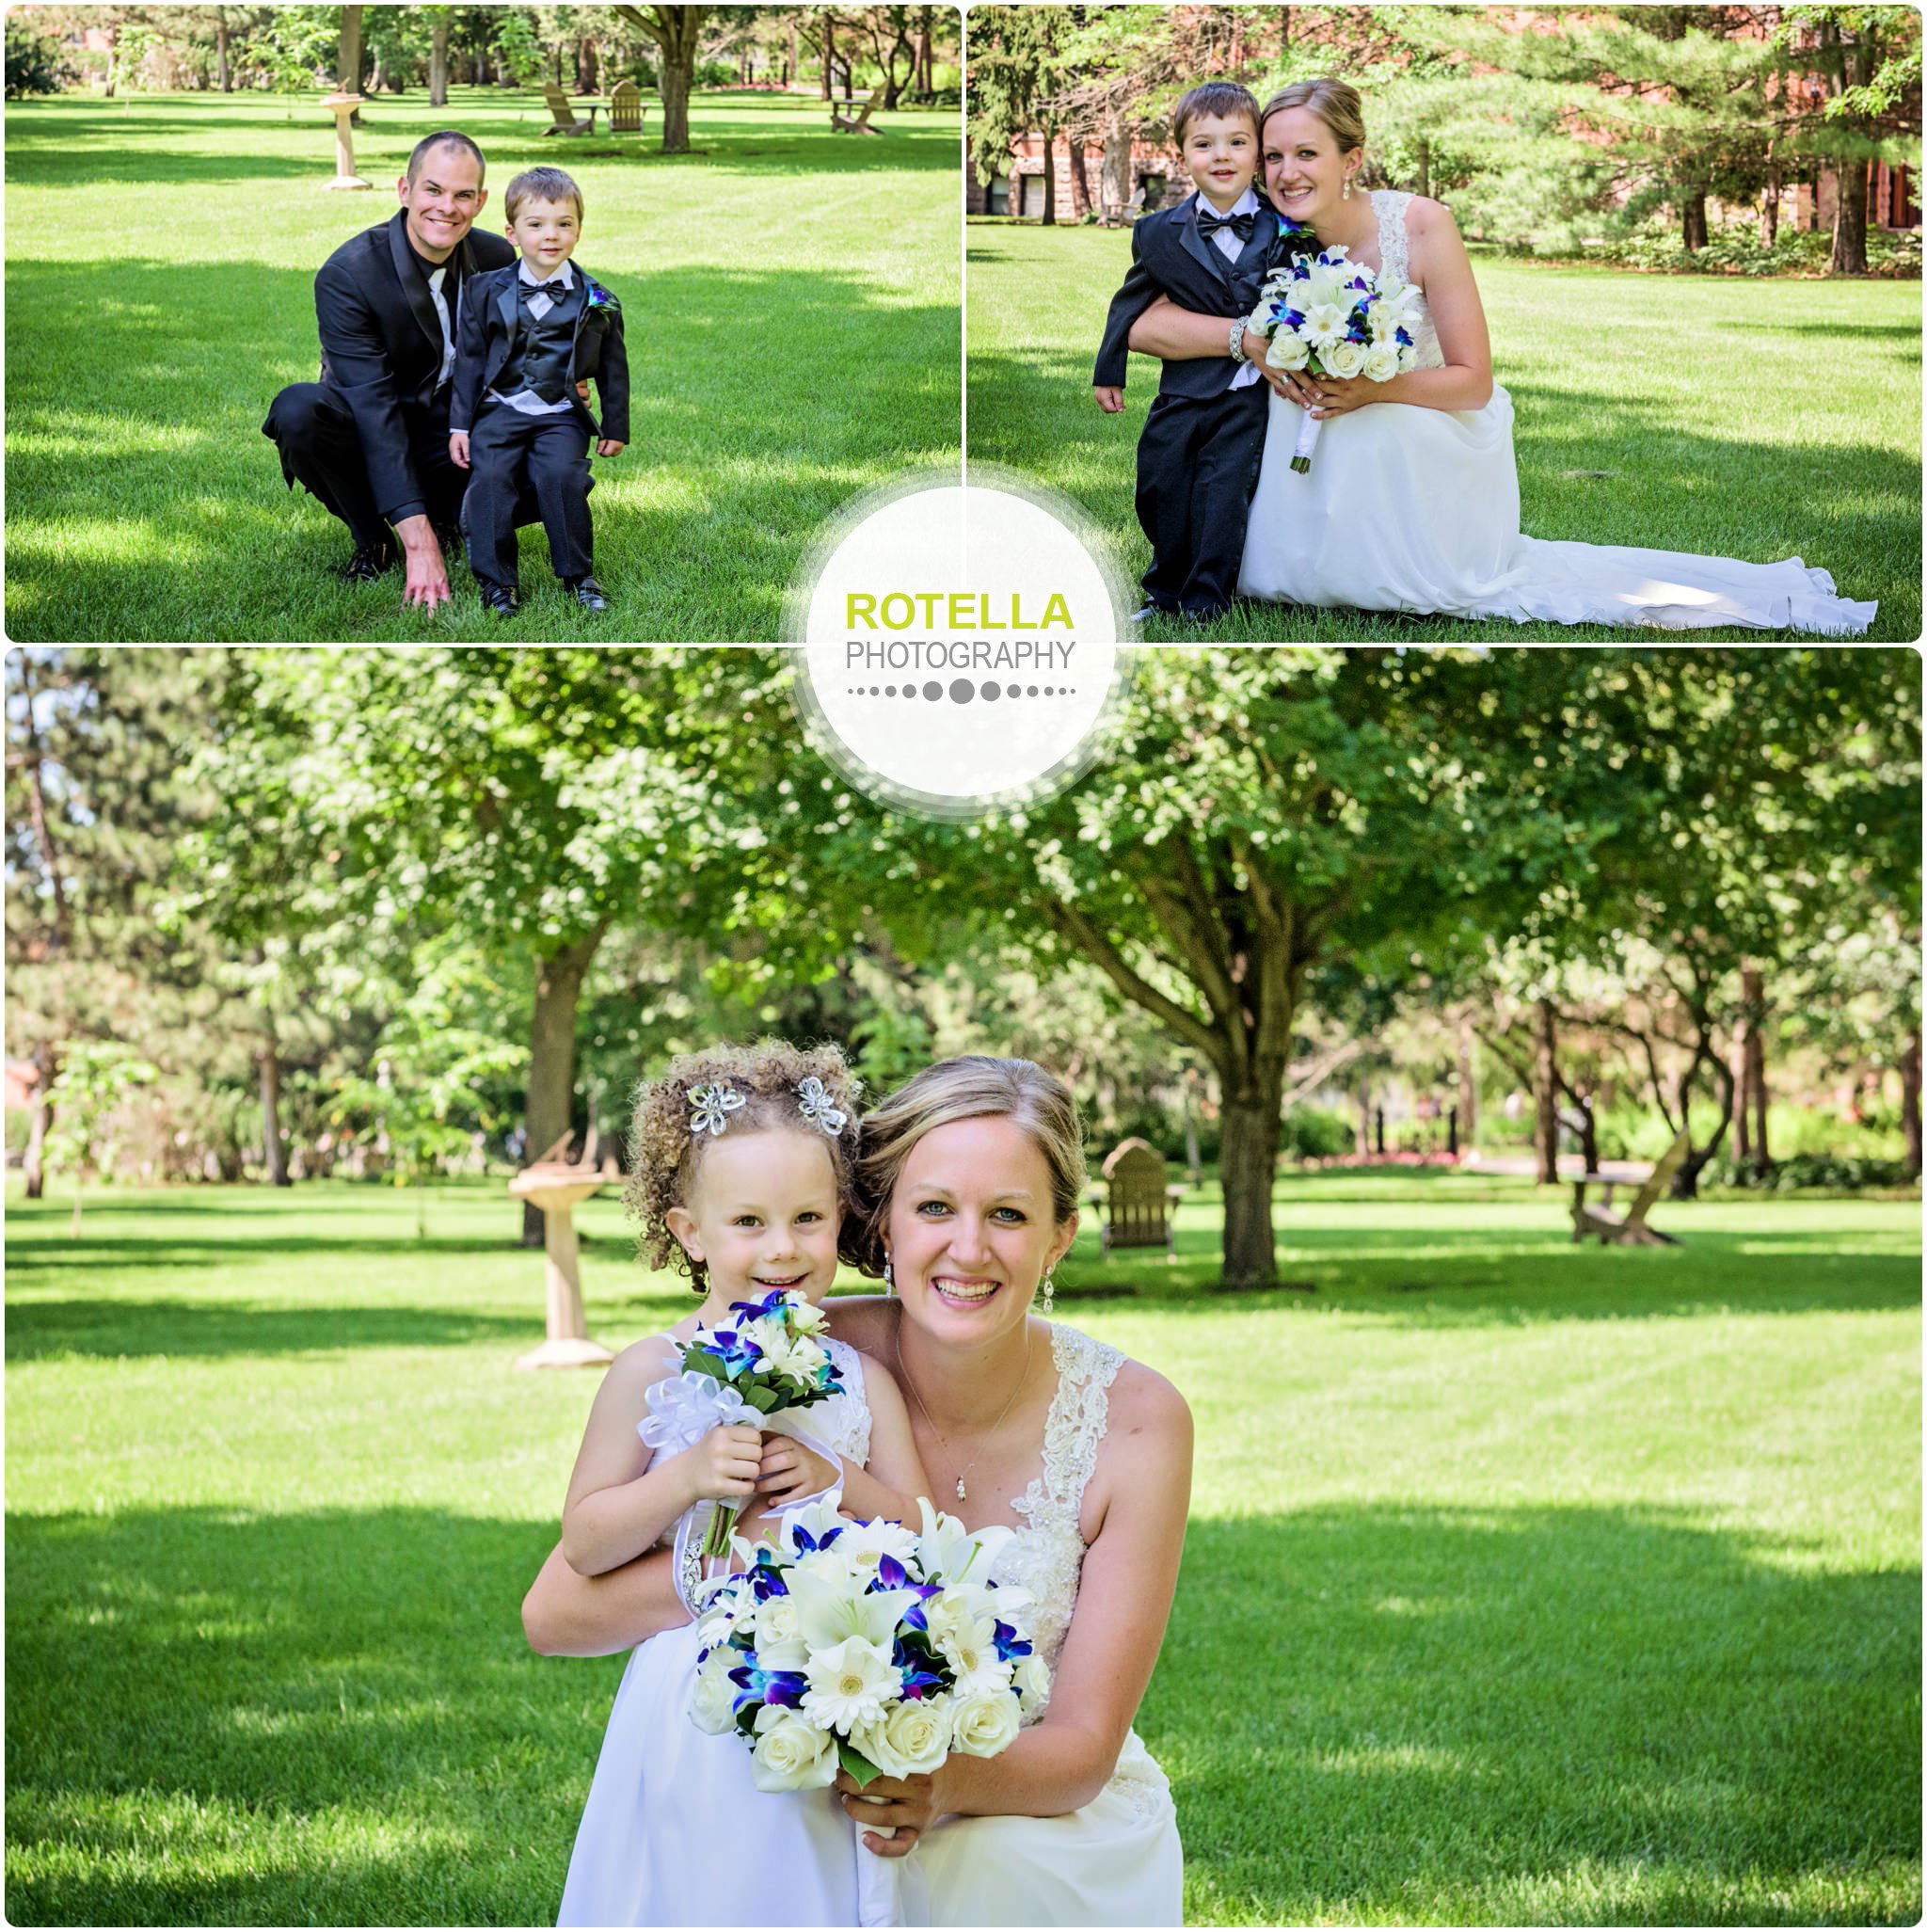 A College of St. Benedict's Wedding outdoor portrait with flower girl